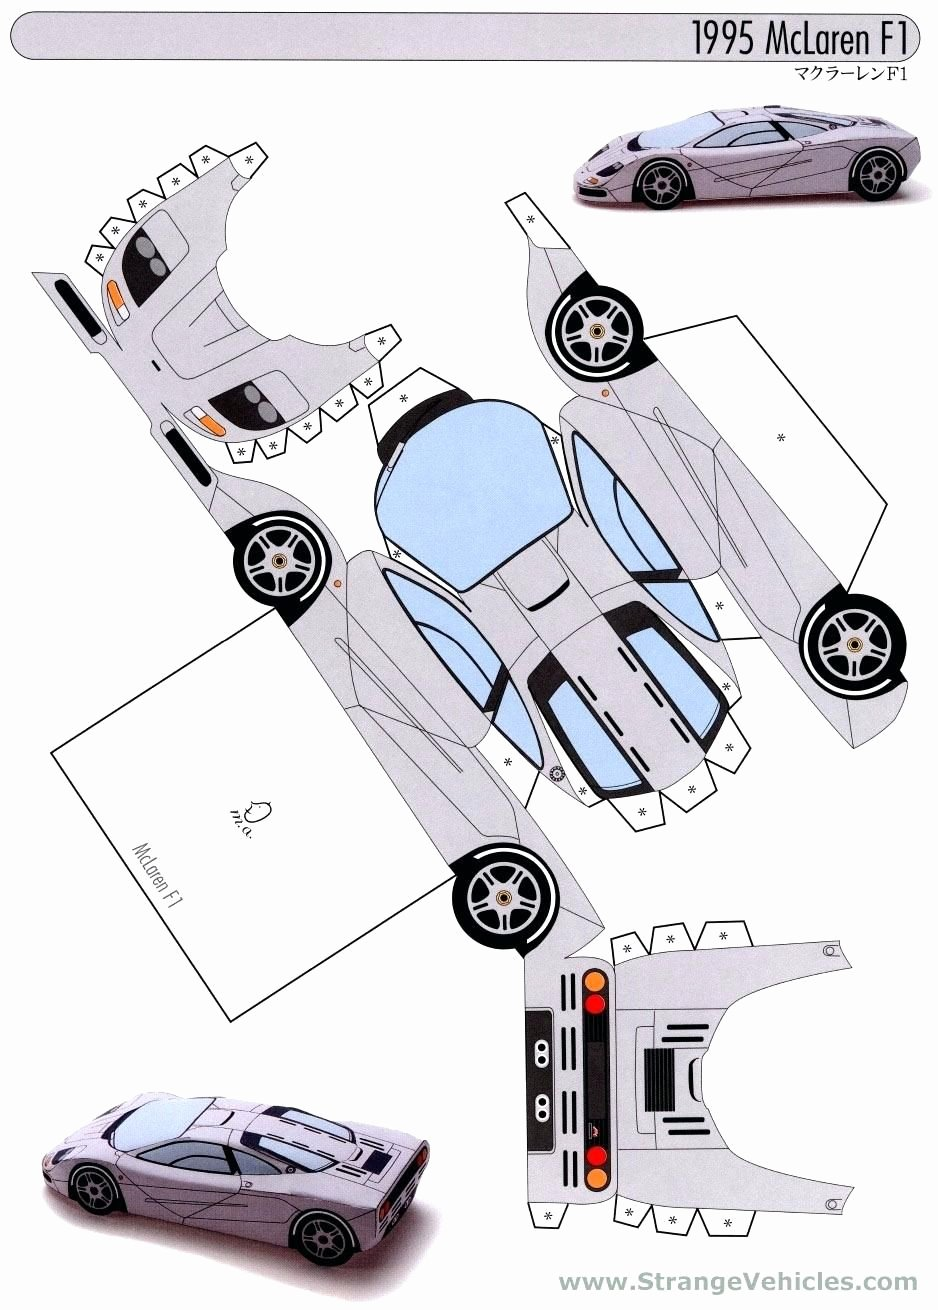 Paper Model Car Templates Lovely Image Result for Paper Model Car Templates Cars